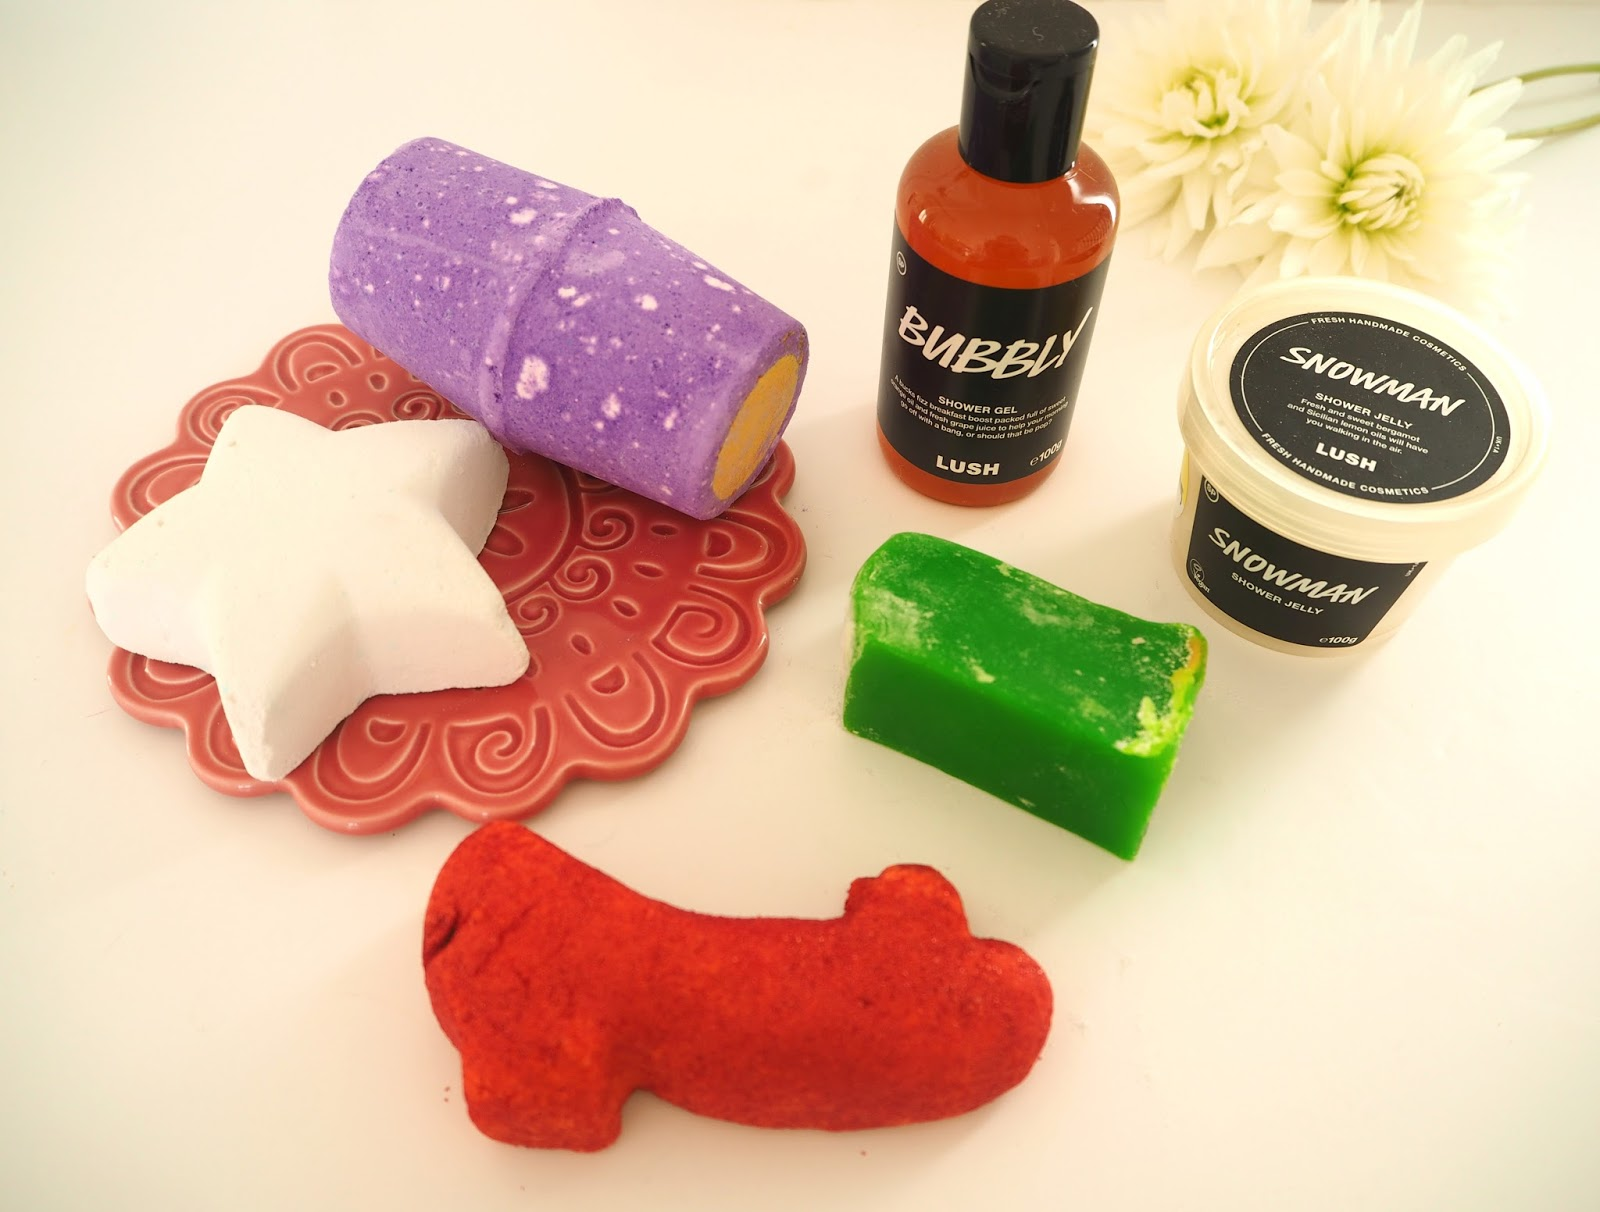 Lush Cosmetics Christmas 2016 Favourites, Lush Boxing Day Sale, UK Blogger, Lush Cosmetics, Beauty Blogger, Christmas Gifts